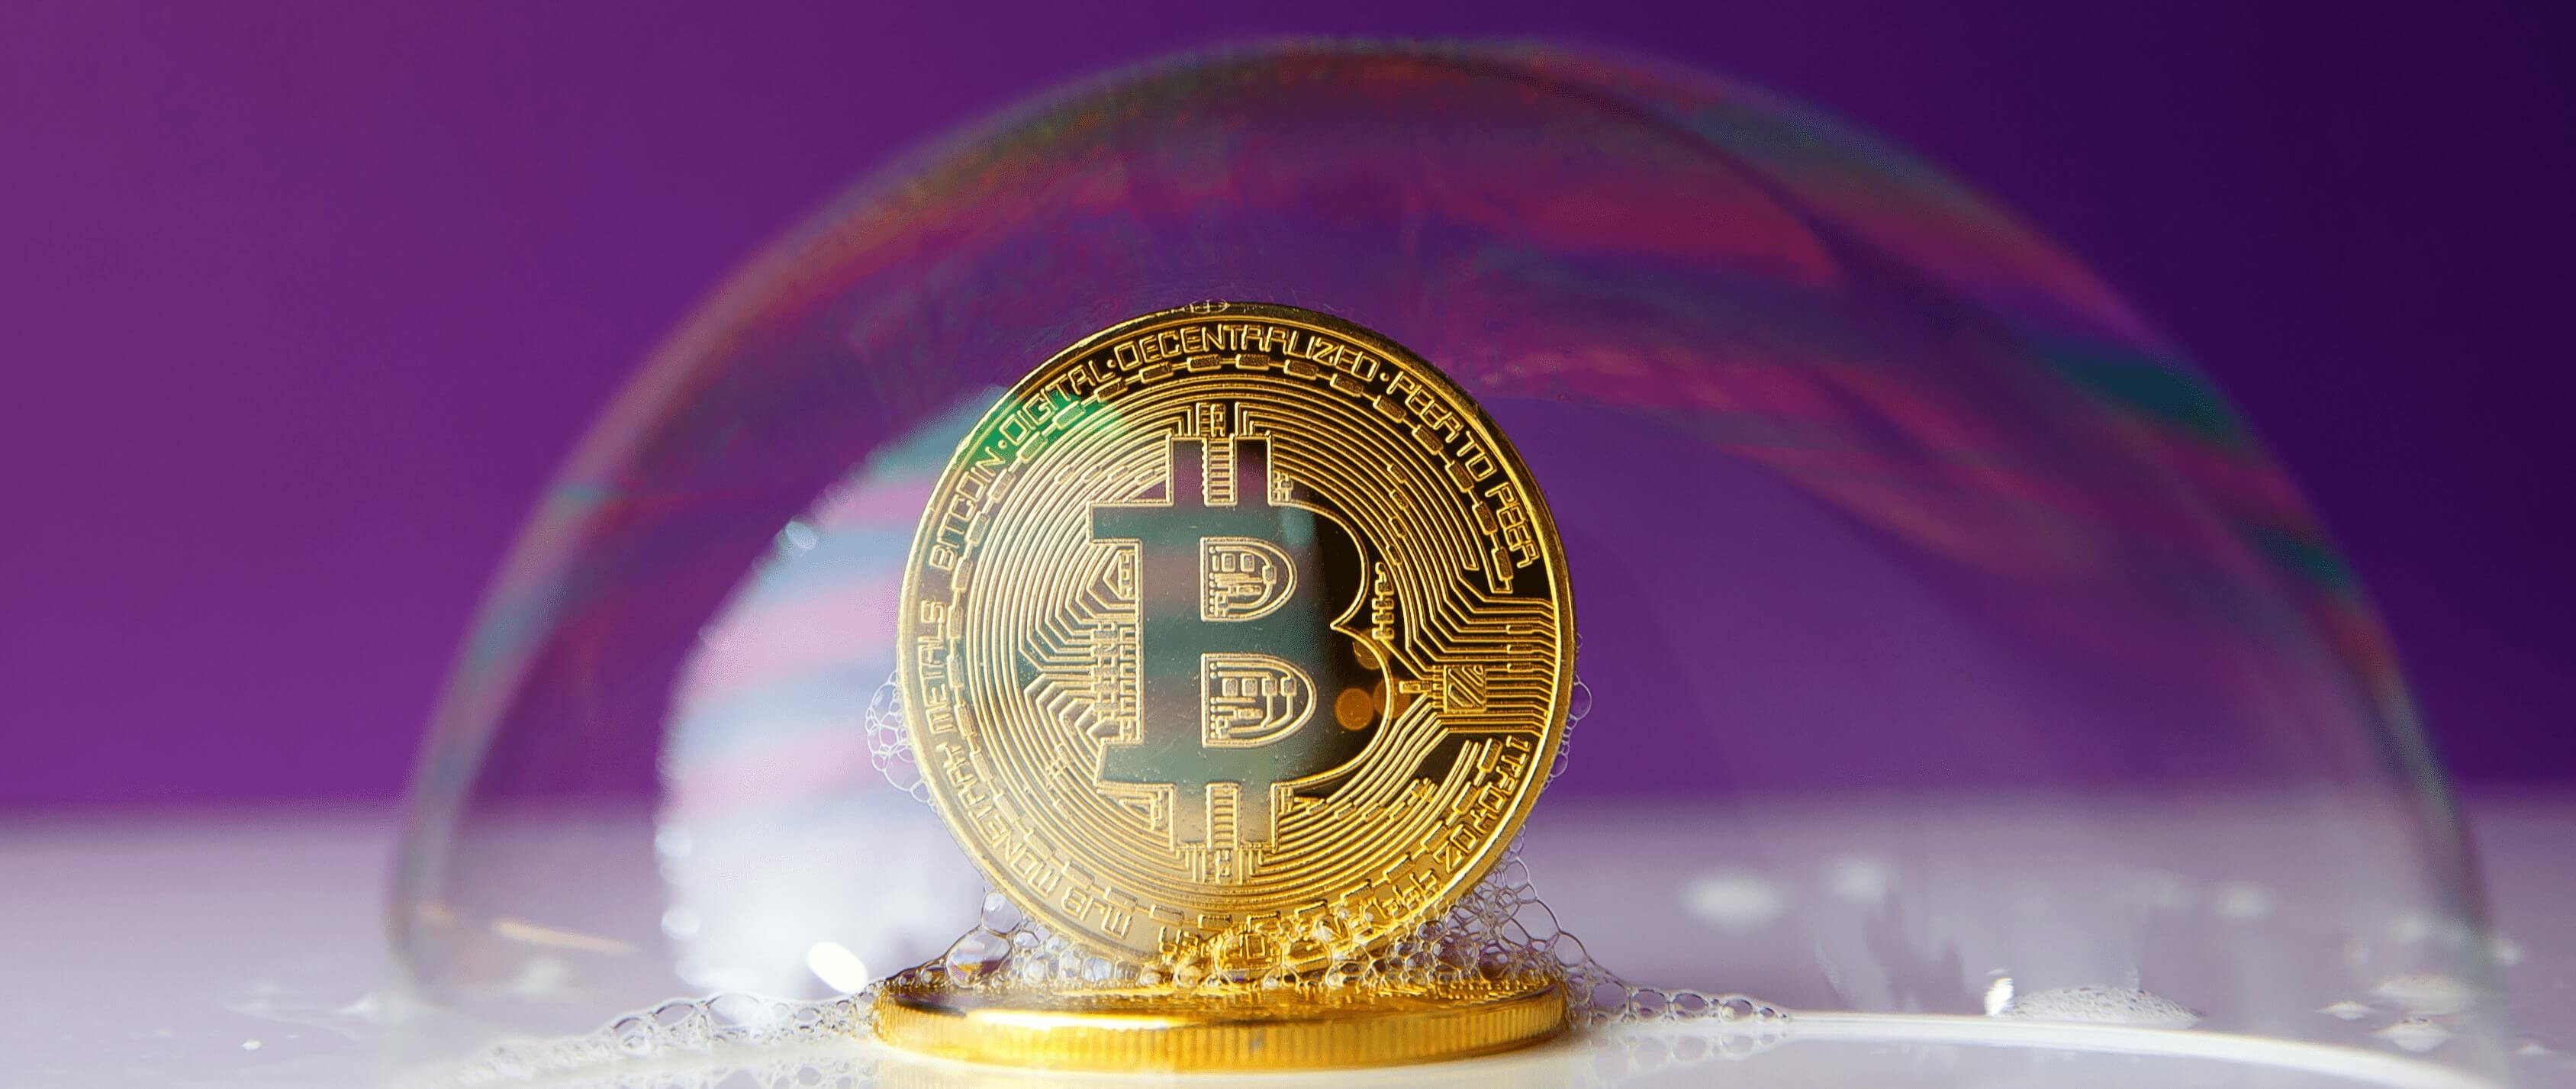 Eternal question, is Bitcoin a speculative bubble?